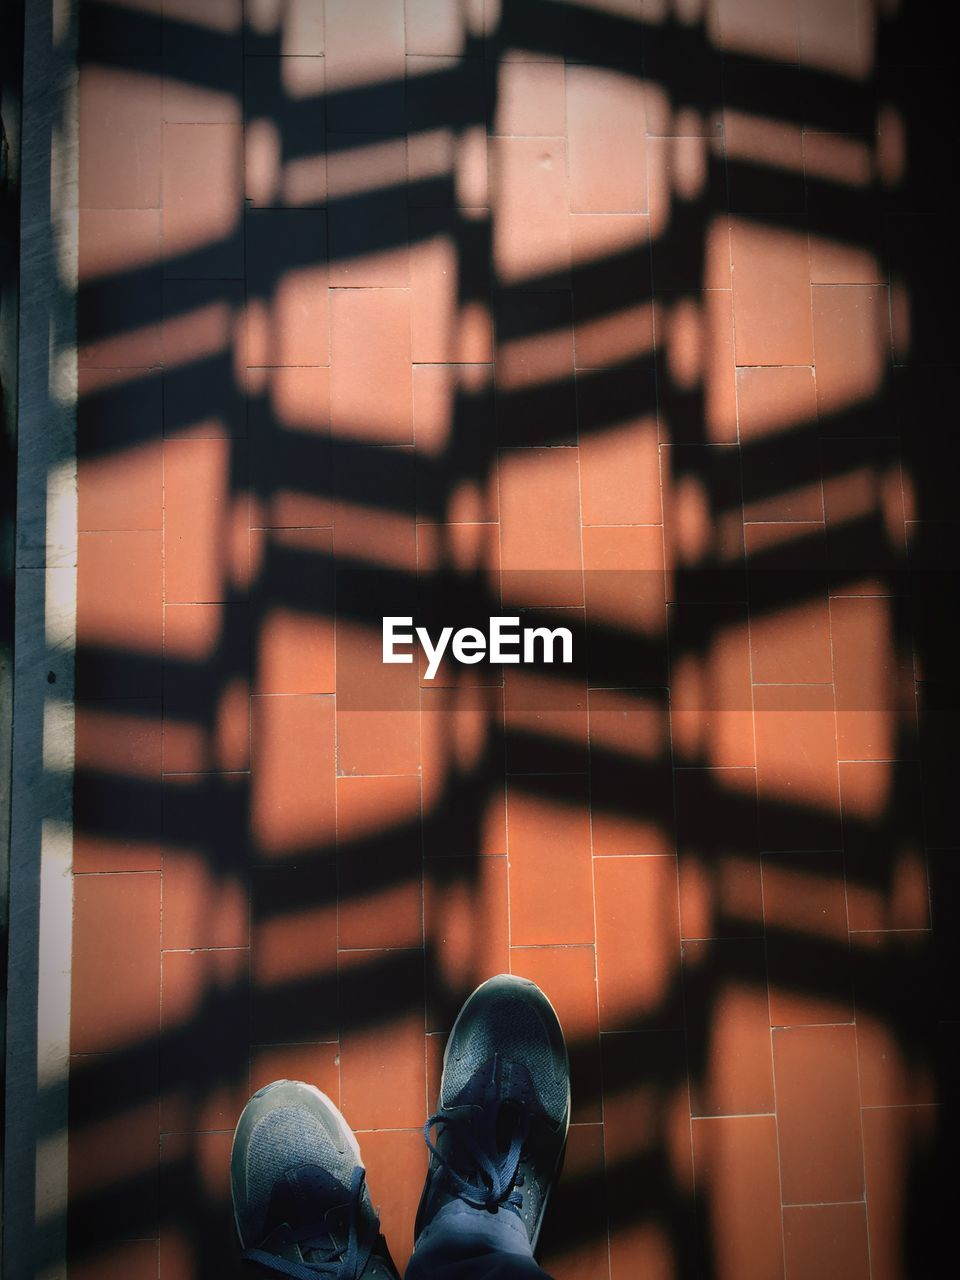 shoe, low section, human body part, one person, real people, body part, human leg, lifestyles, outdoors, standing, leisure activity, shadow, day, personal perspective, unrecognizable person, sunlight, directly above, nature, human foot, flooring, tiled floor, human limb